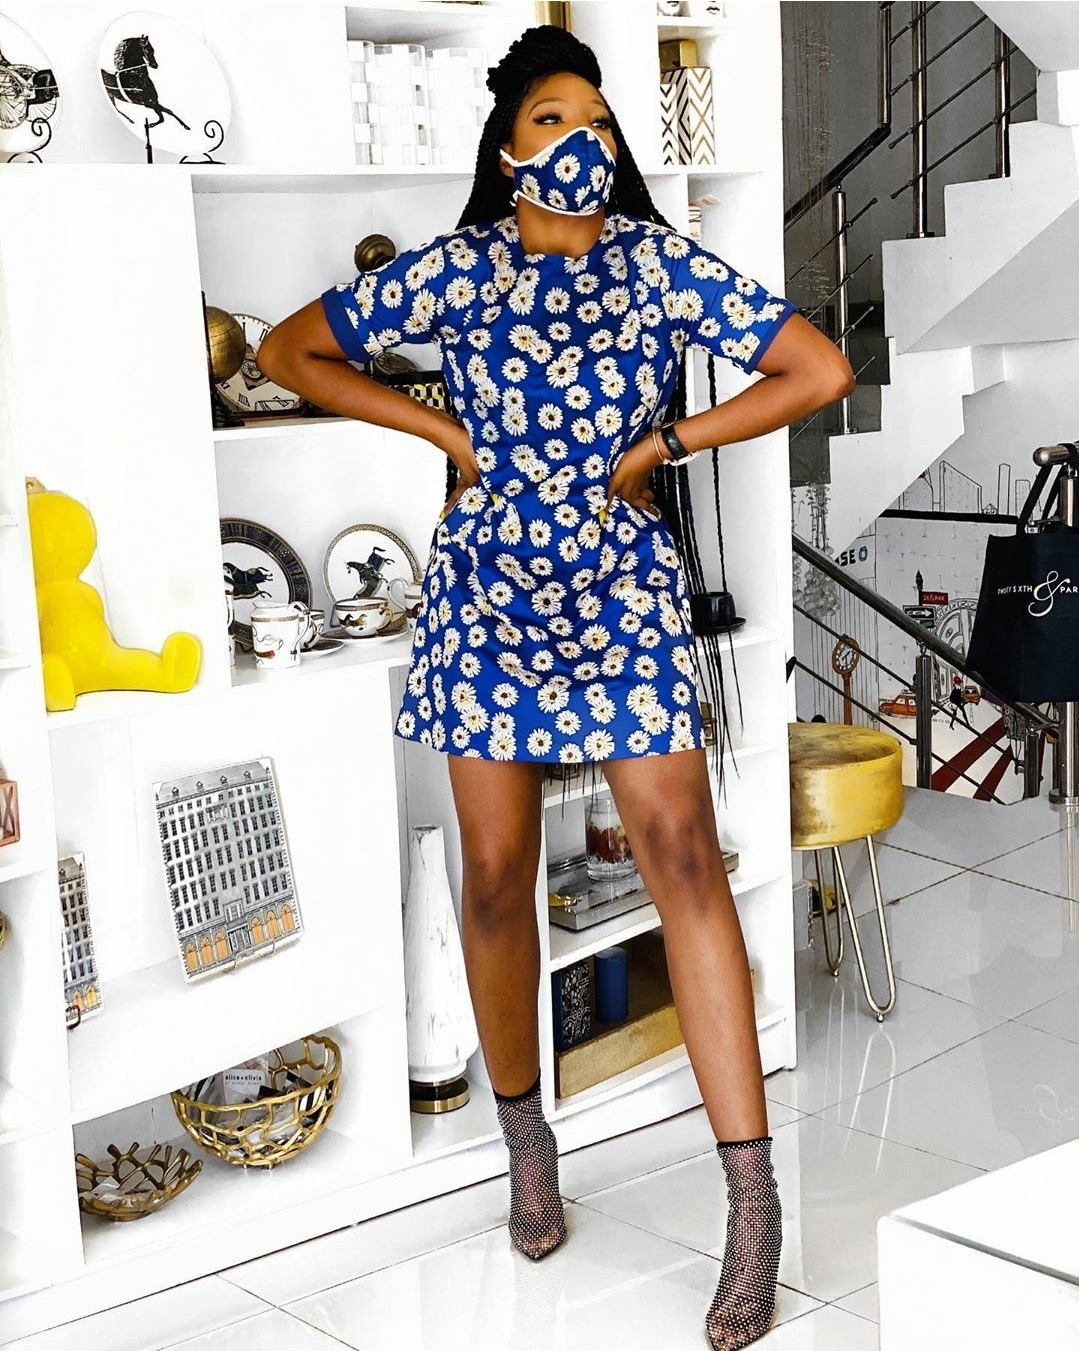 home-made-face-masks-outfit-style